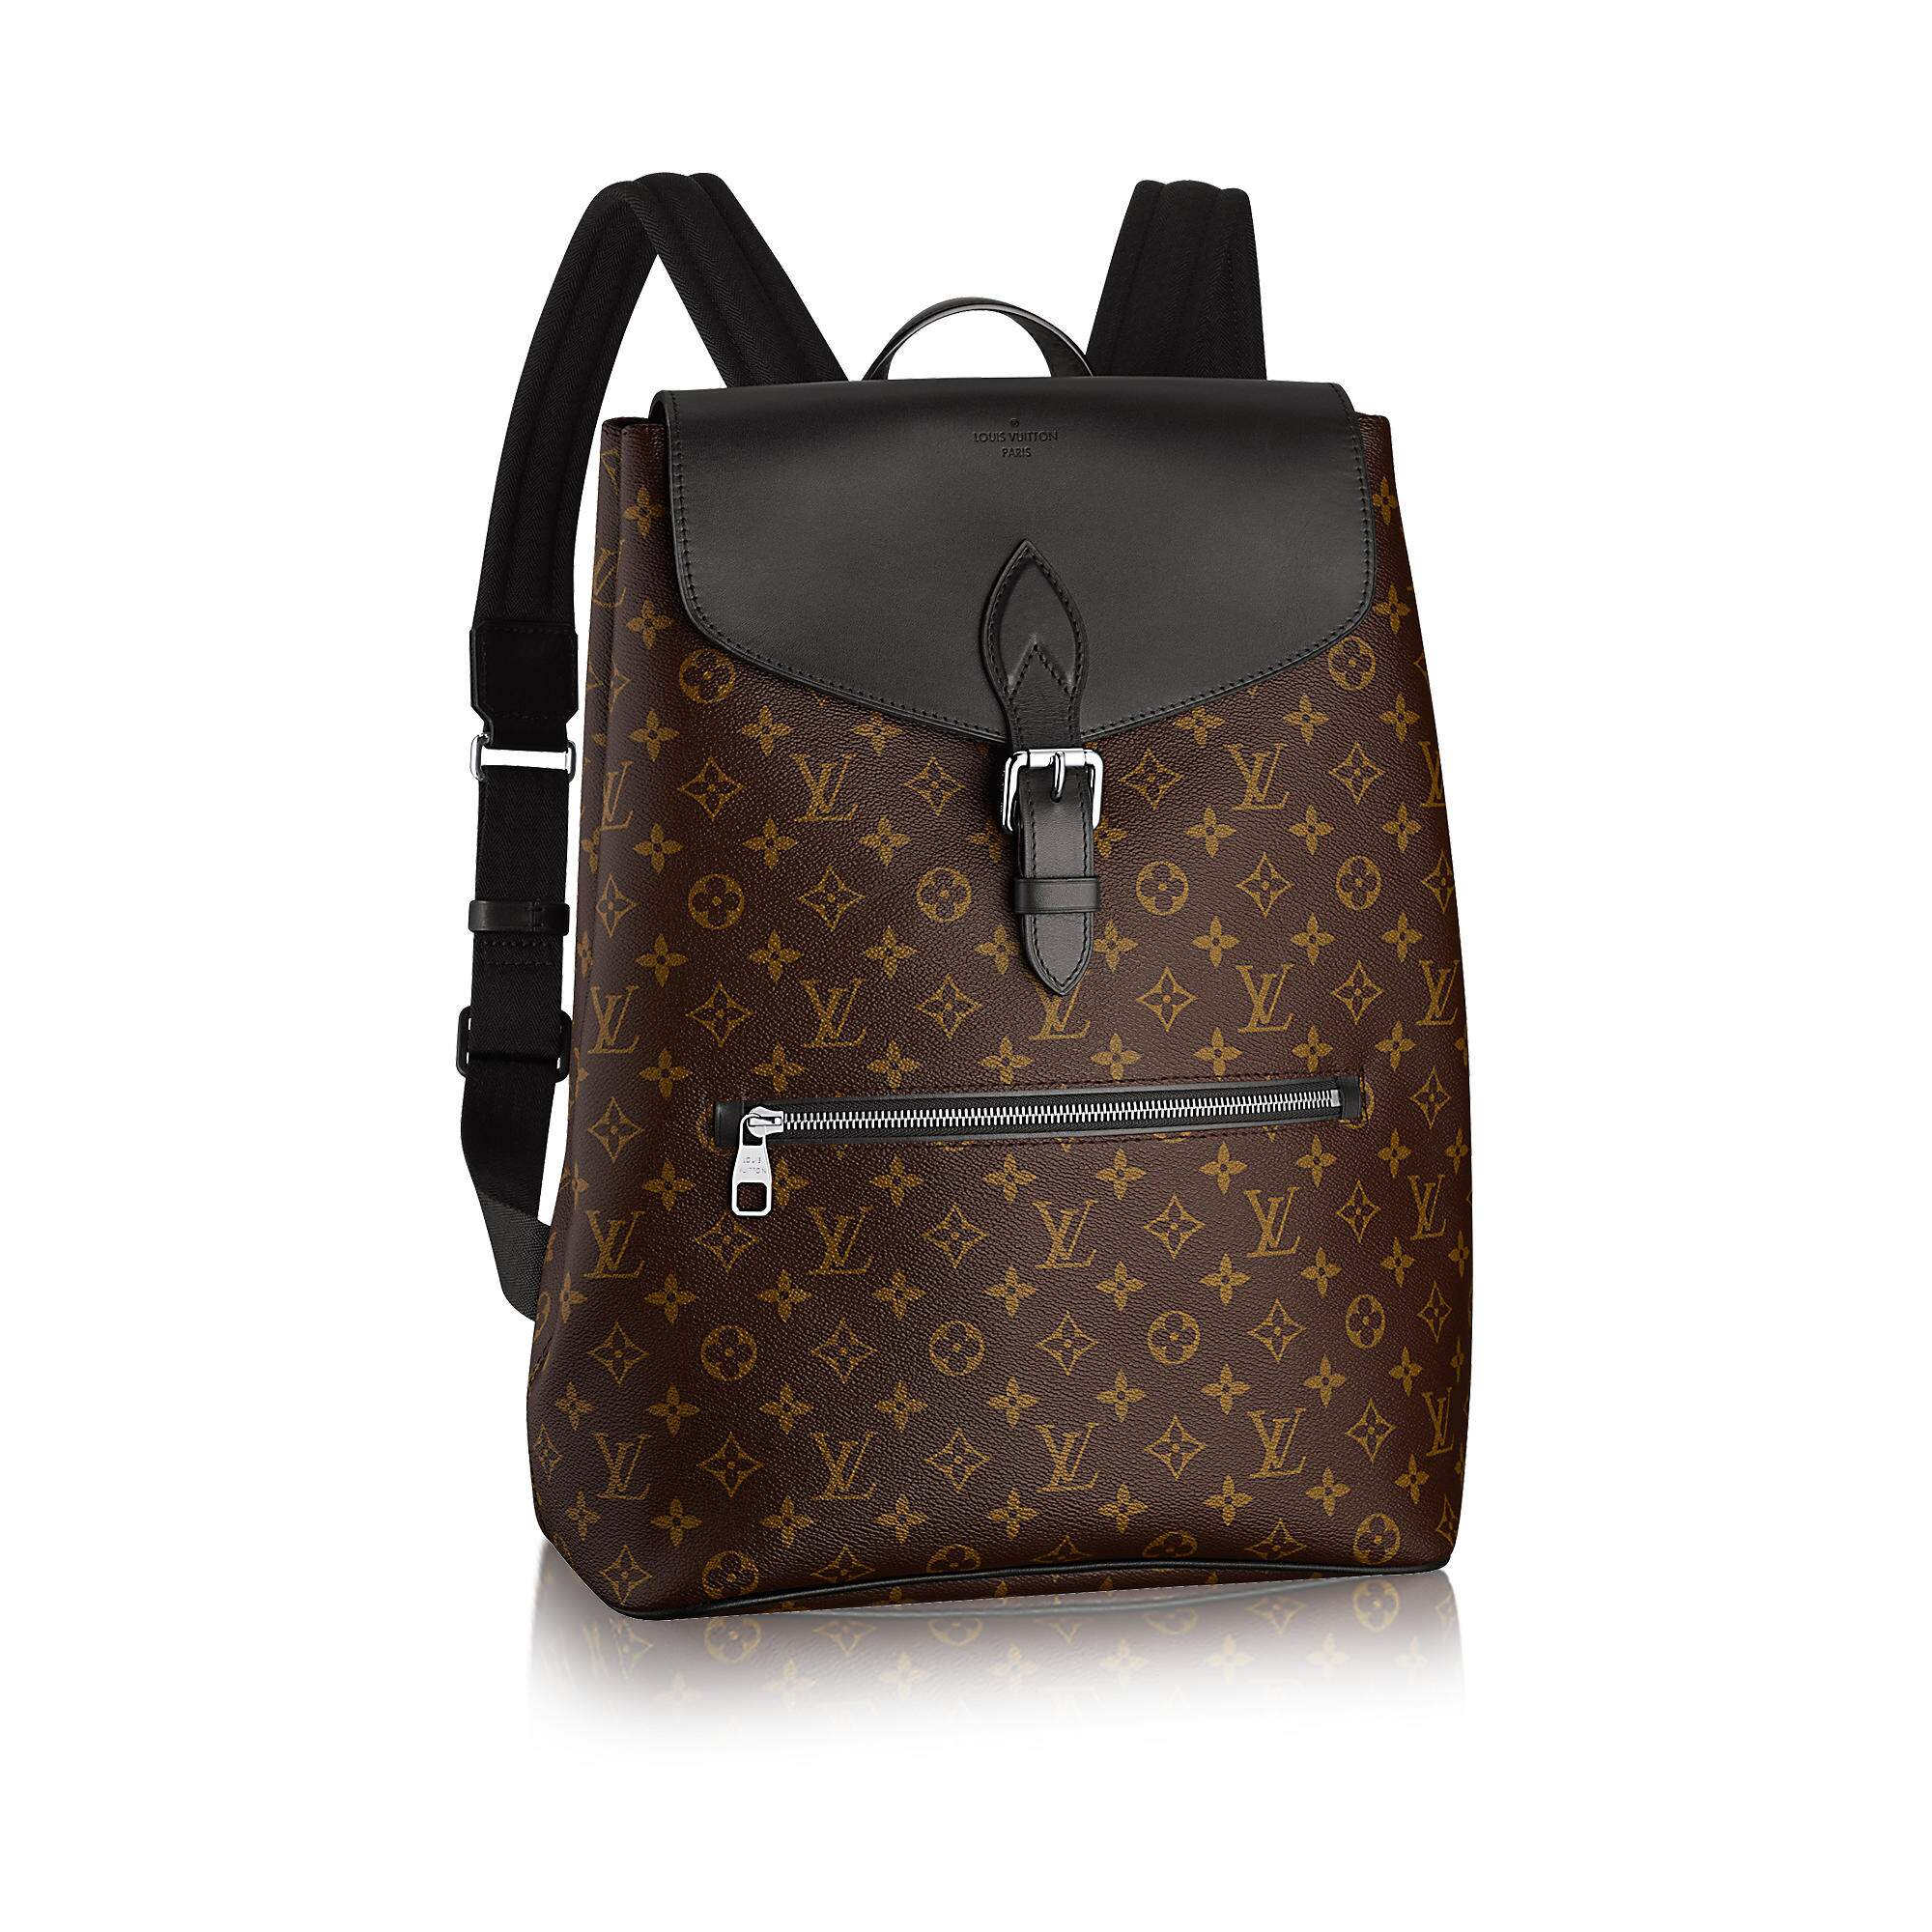 mochila louis vuitton monogram. Black Bedroom Furniture Sets. Home Design Ideas